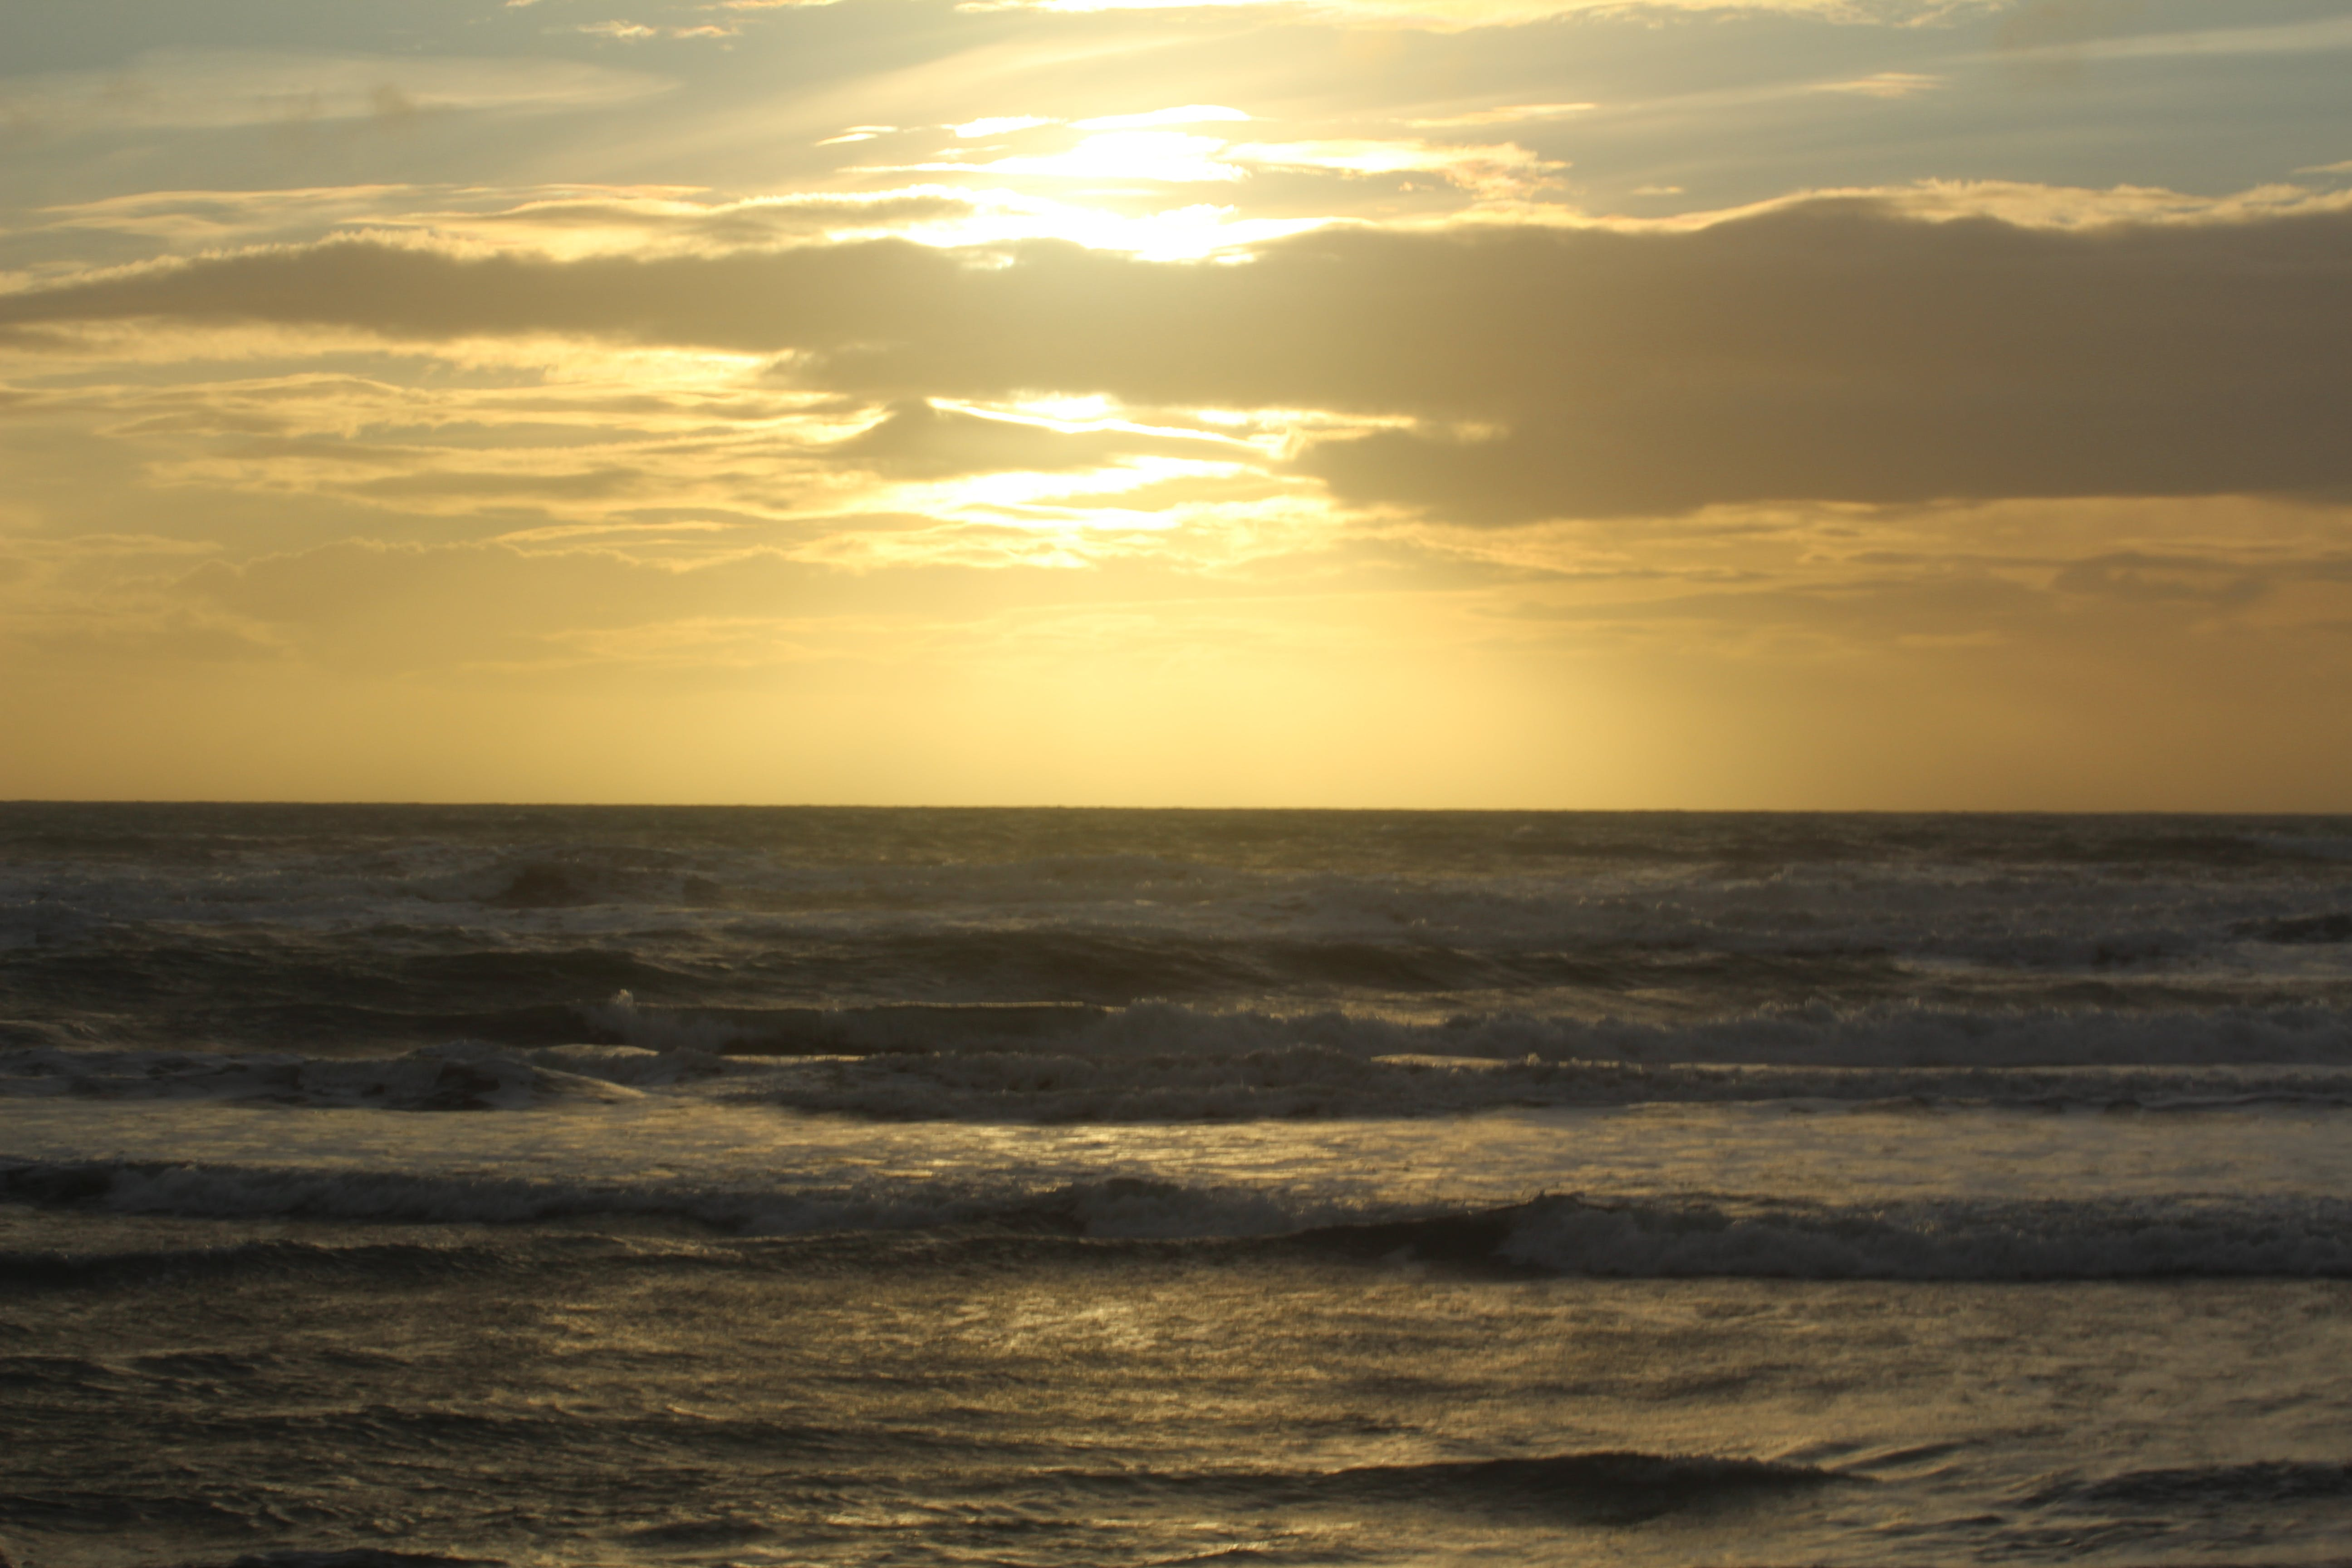 Free stock photo of sea, clouds, waves breaking, #sunset